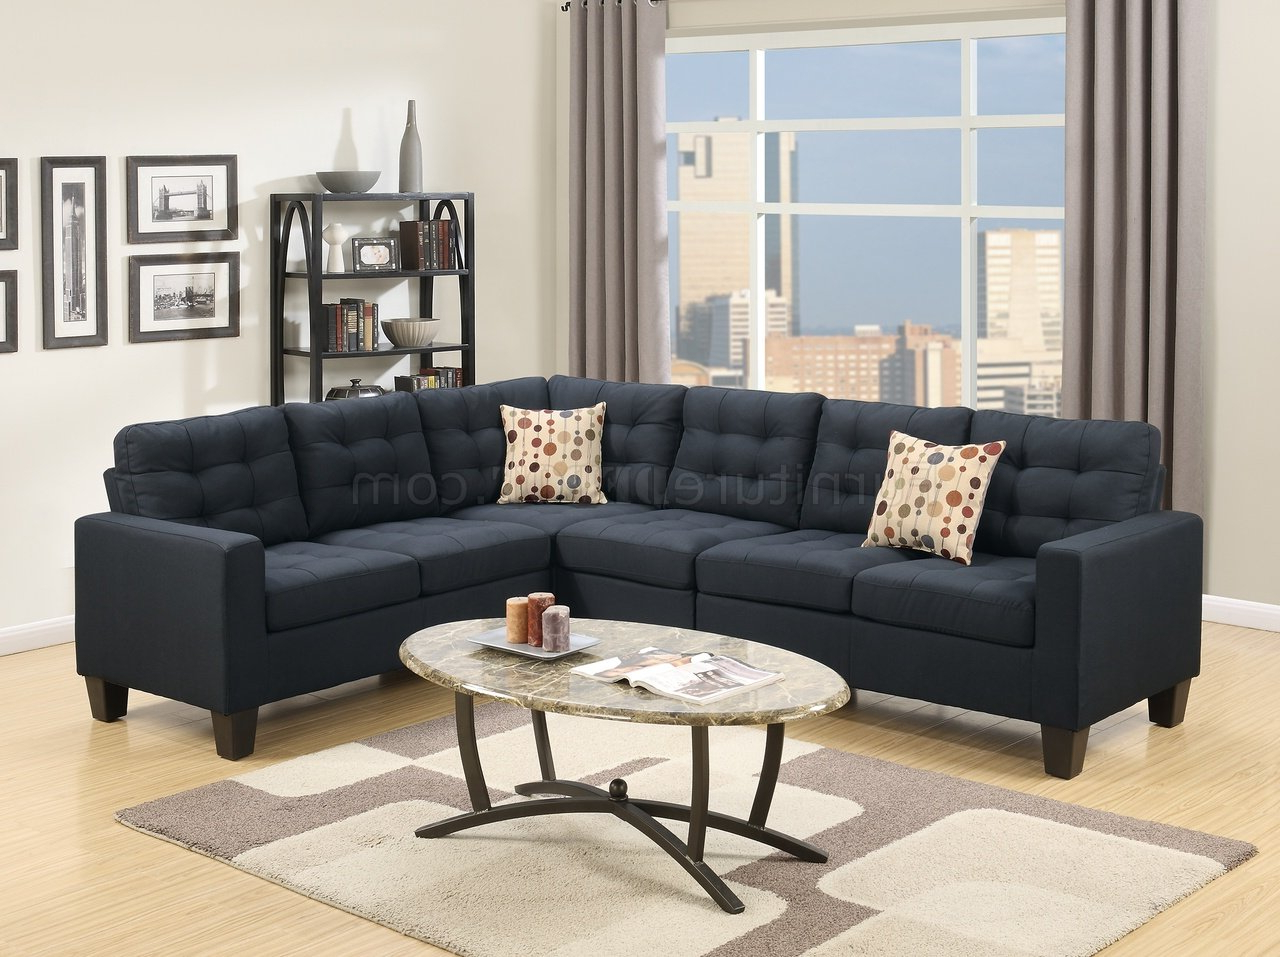 Current F6937 Sectional Sofa In Black Linen Like Fabricboss For Polyfiber Linen Fabric Sectional Sofas Dark Gray (View 13 of 25)